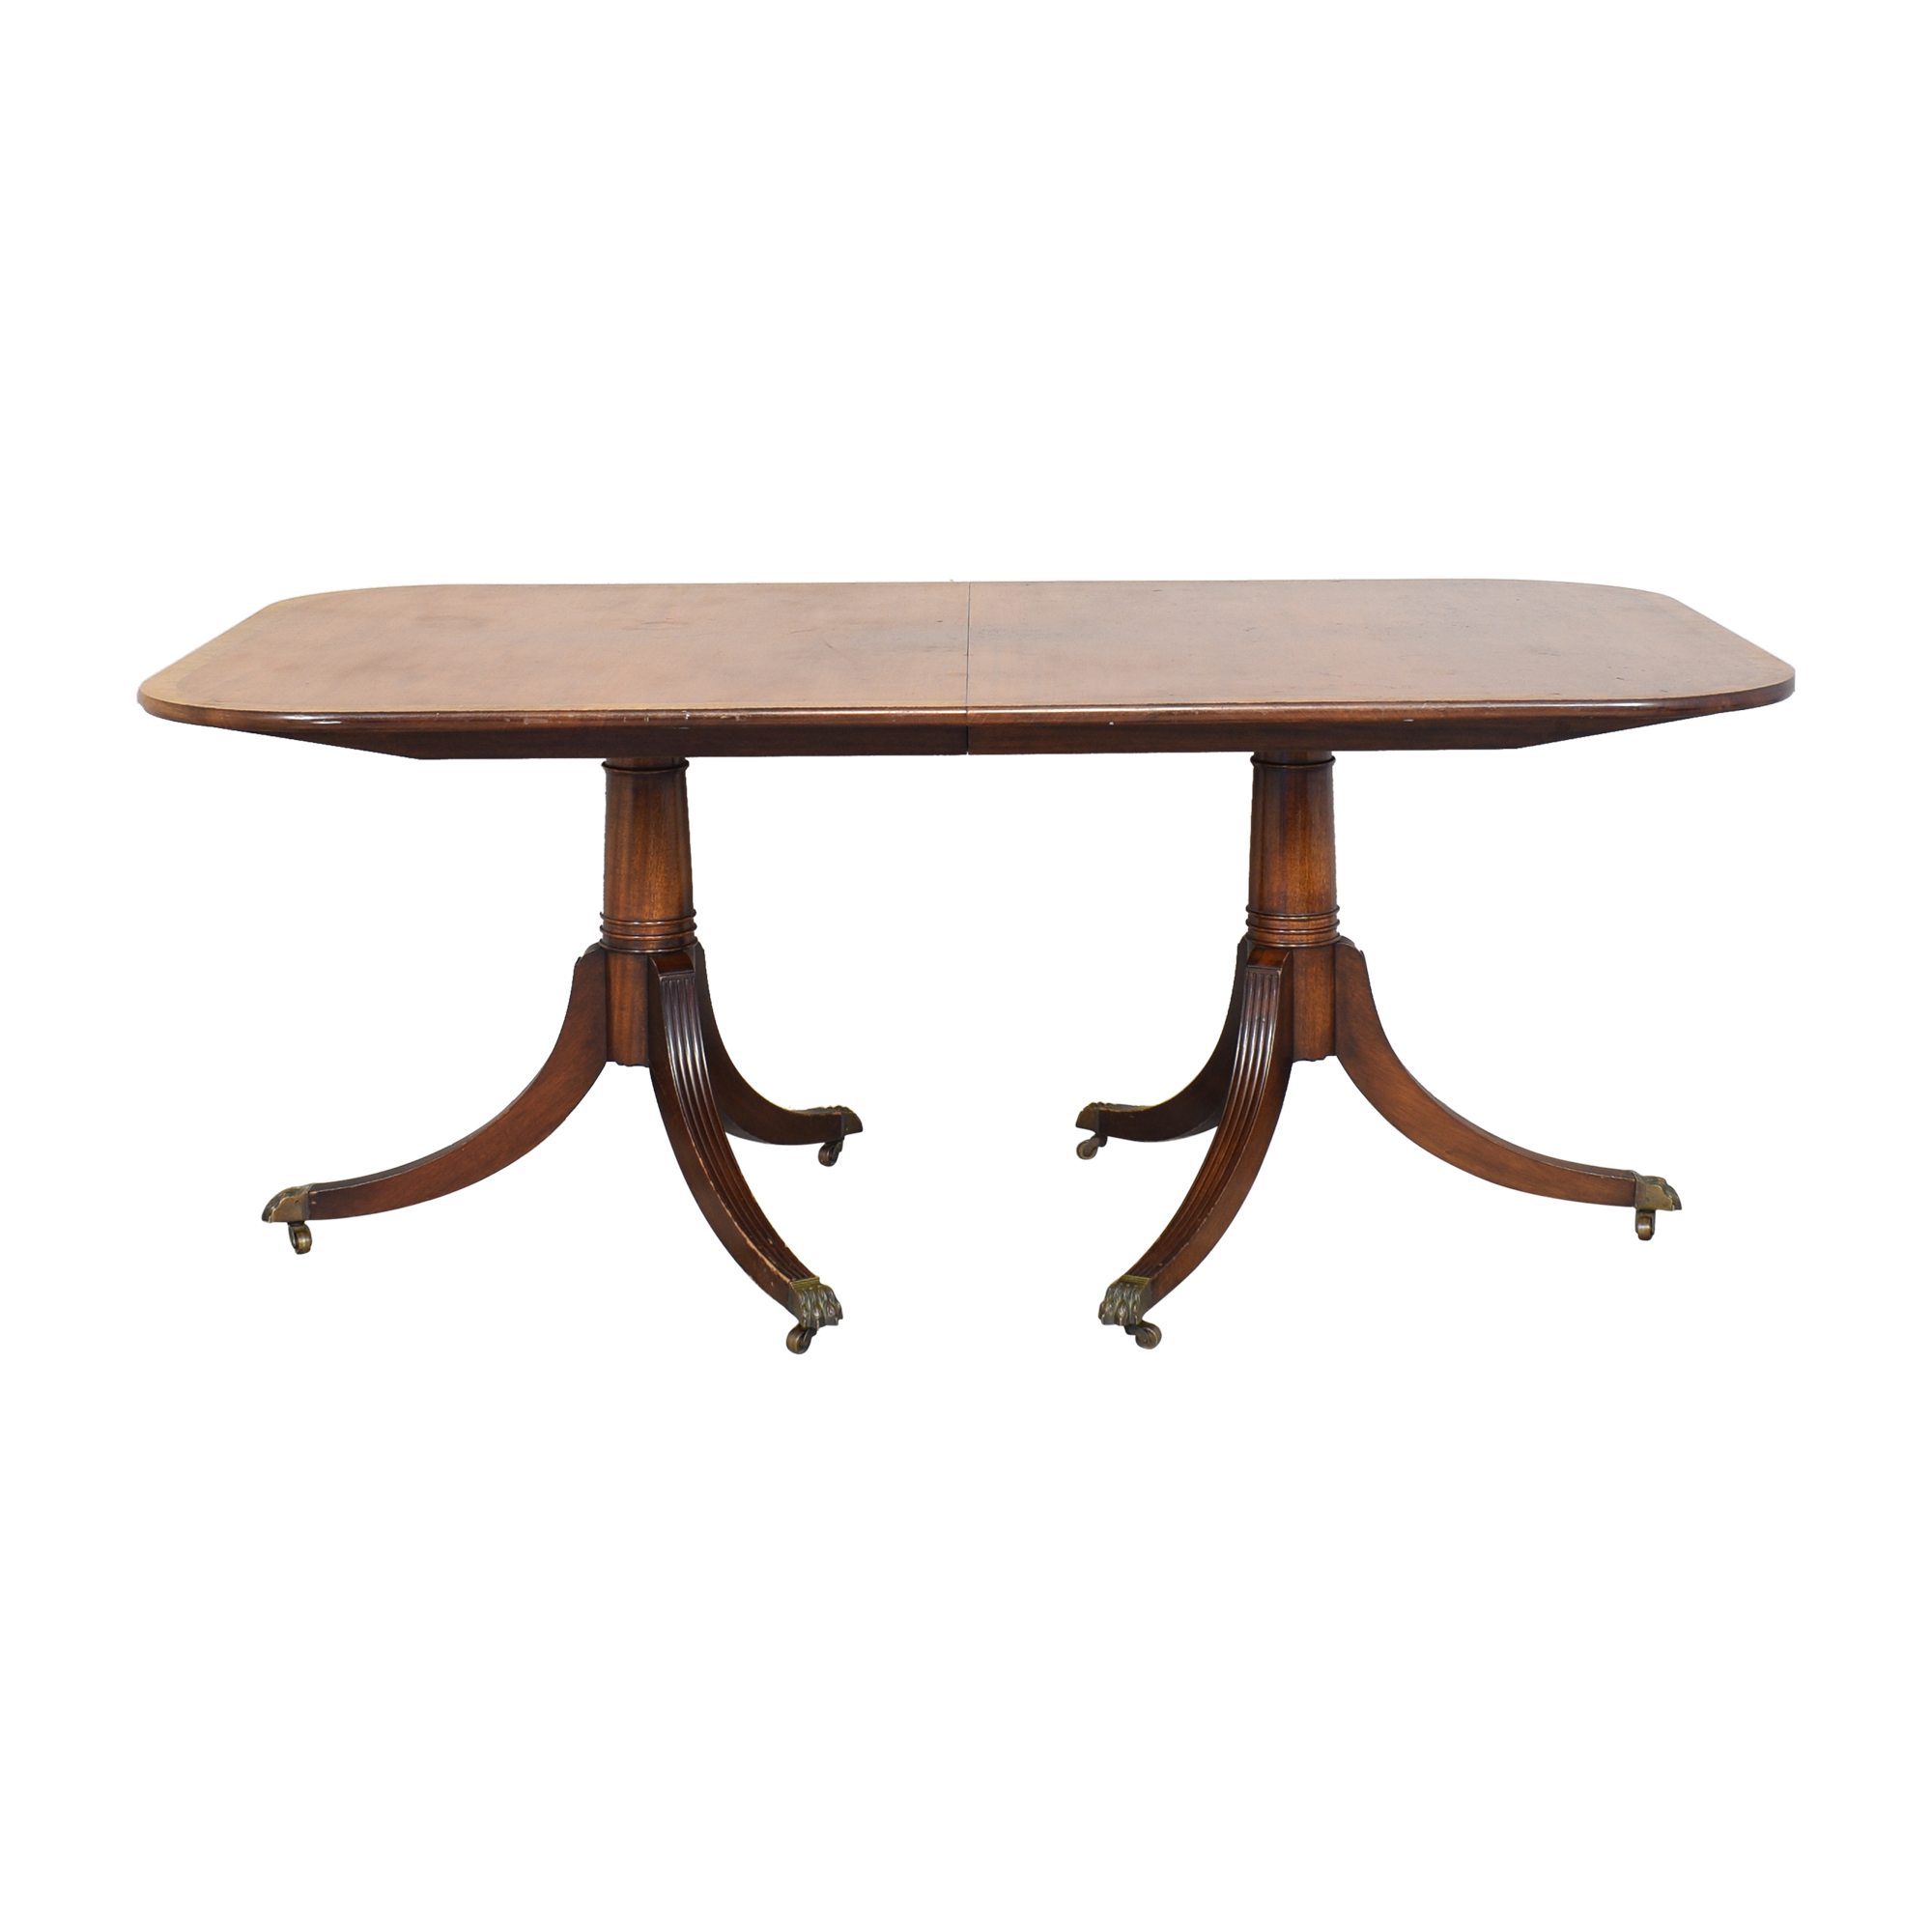 Vintage Clawfoot Extendable Dining Table for sale